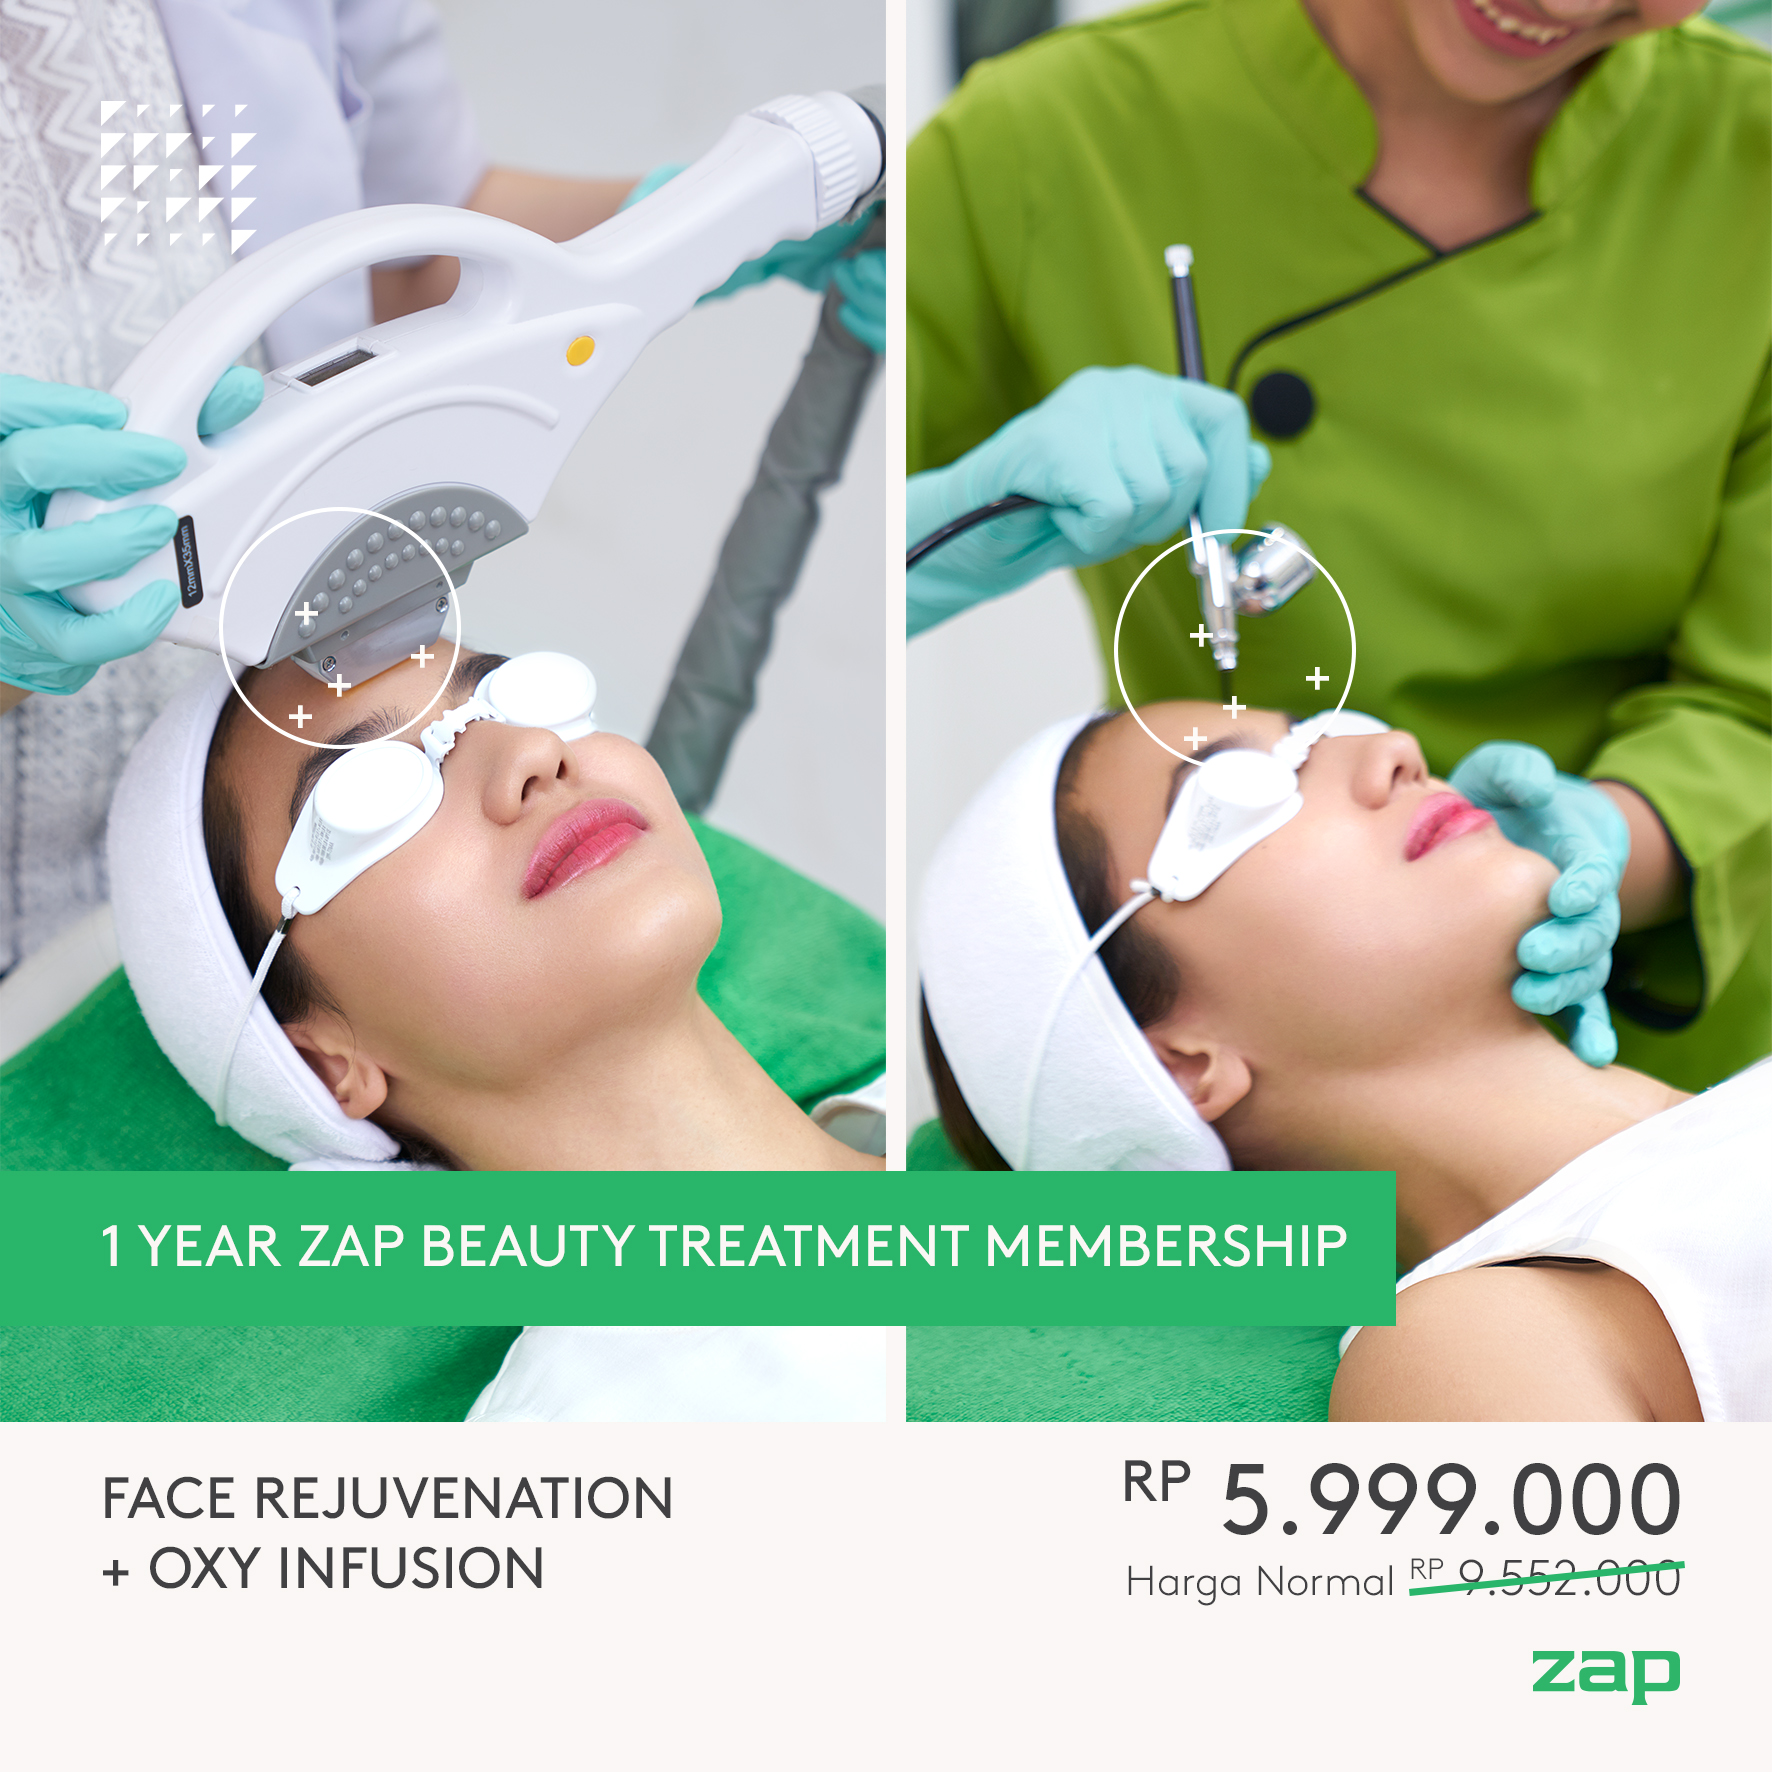 1 Year Face Rejuvenation and Oxy Infusion Membership